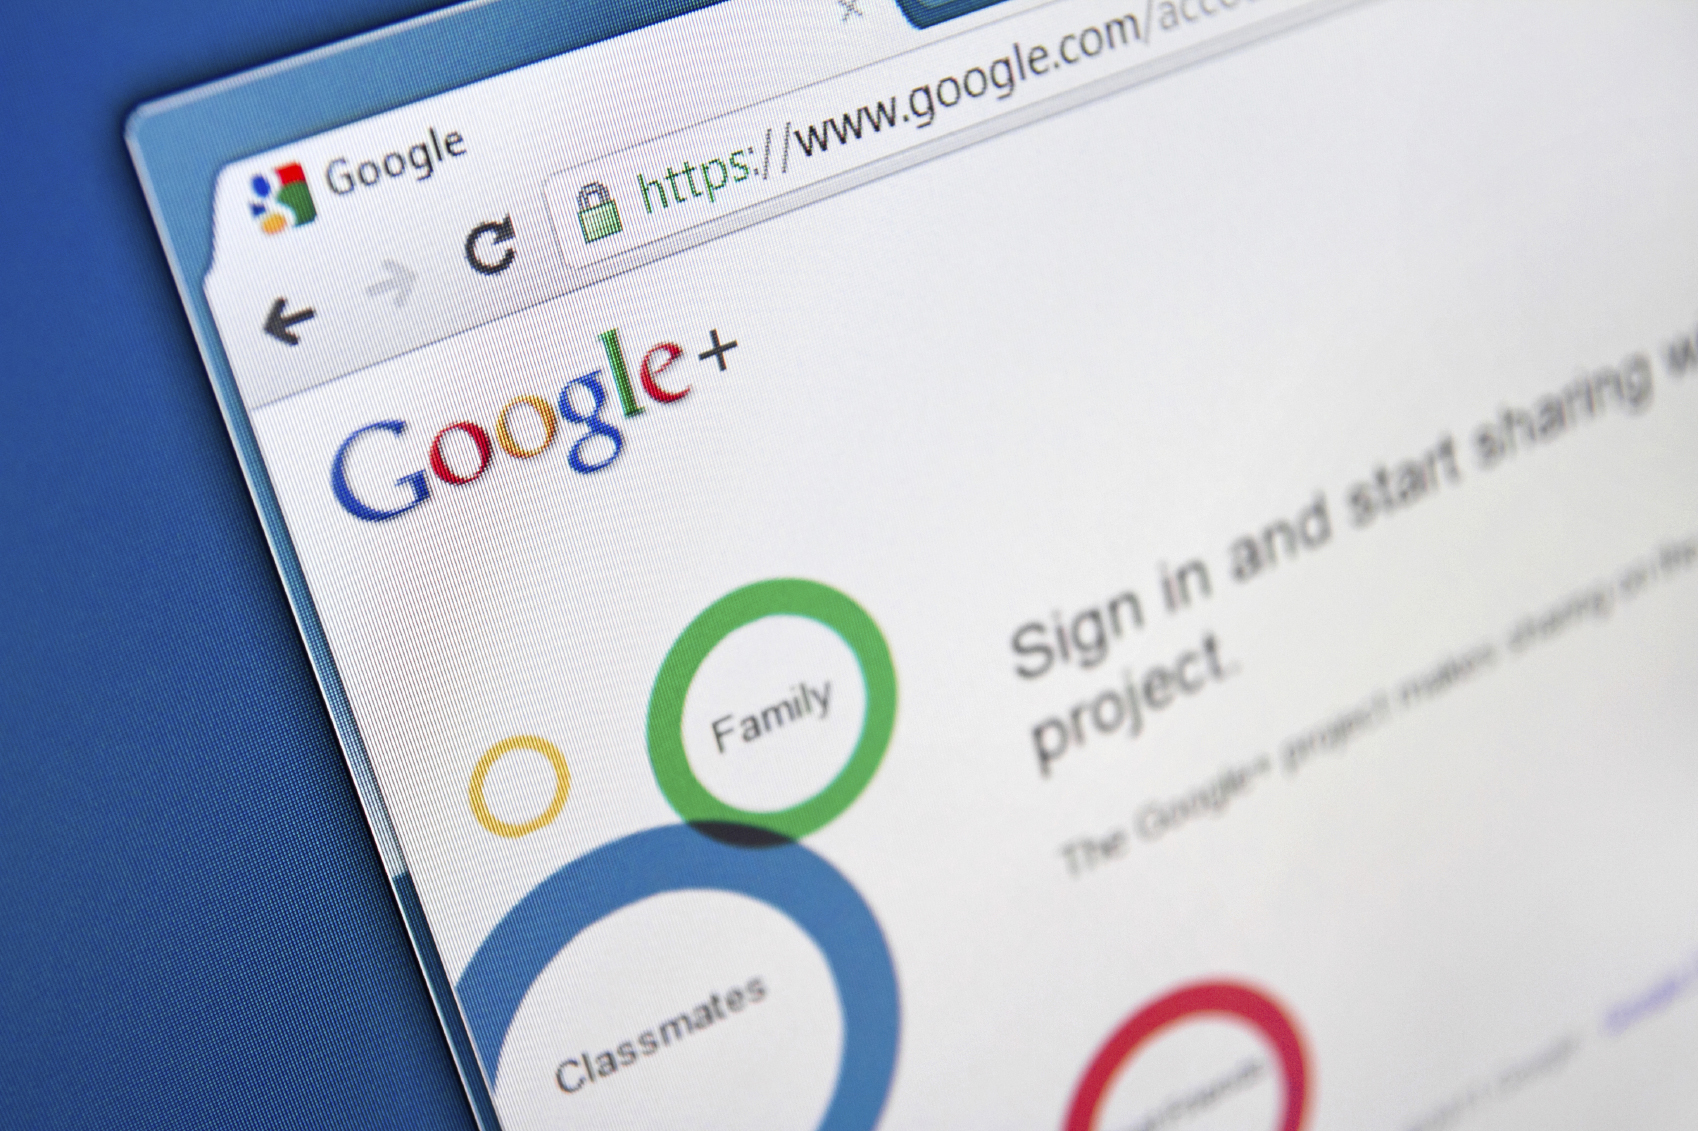 Google+ Business Profiles Now Available with Google Apps for Business